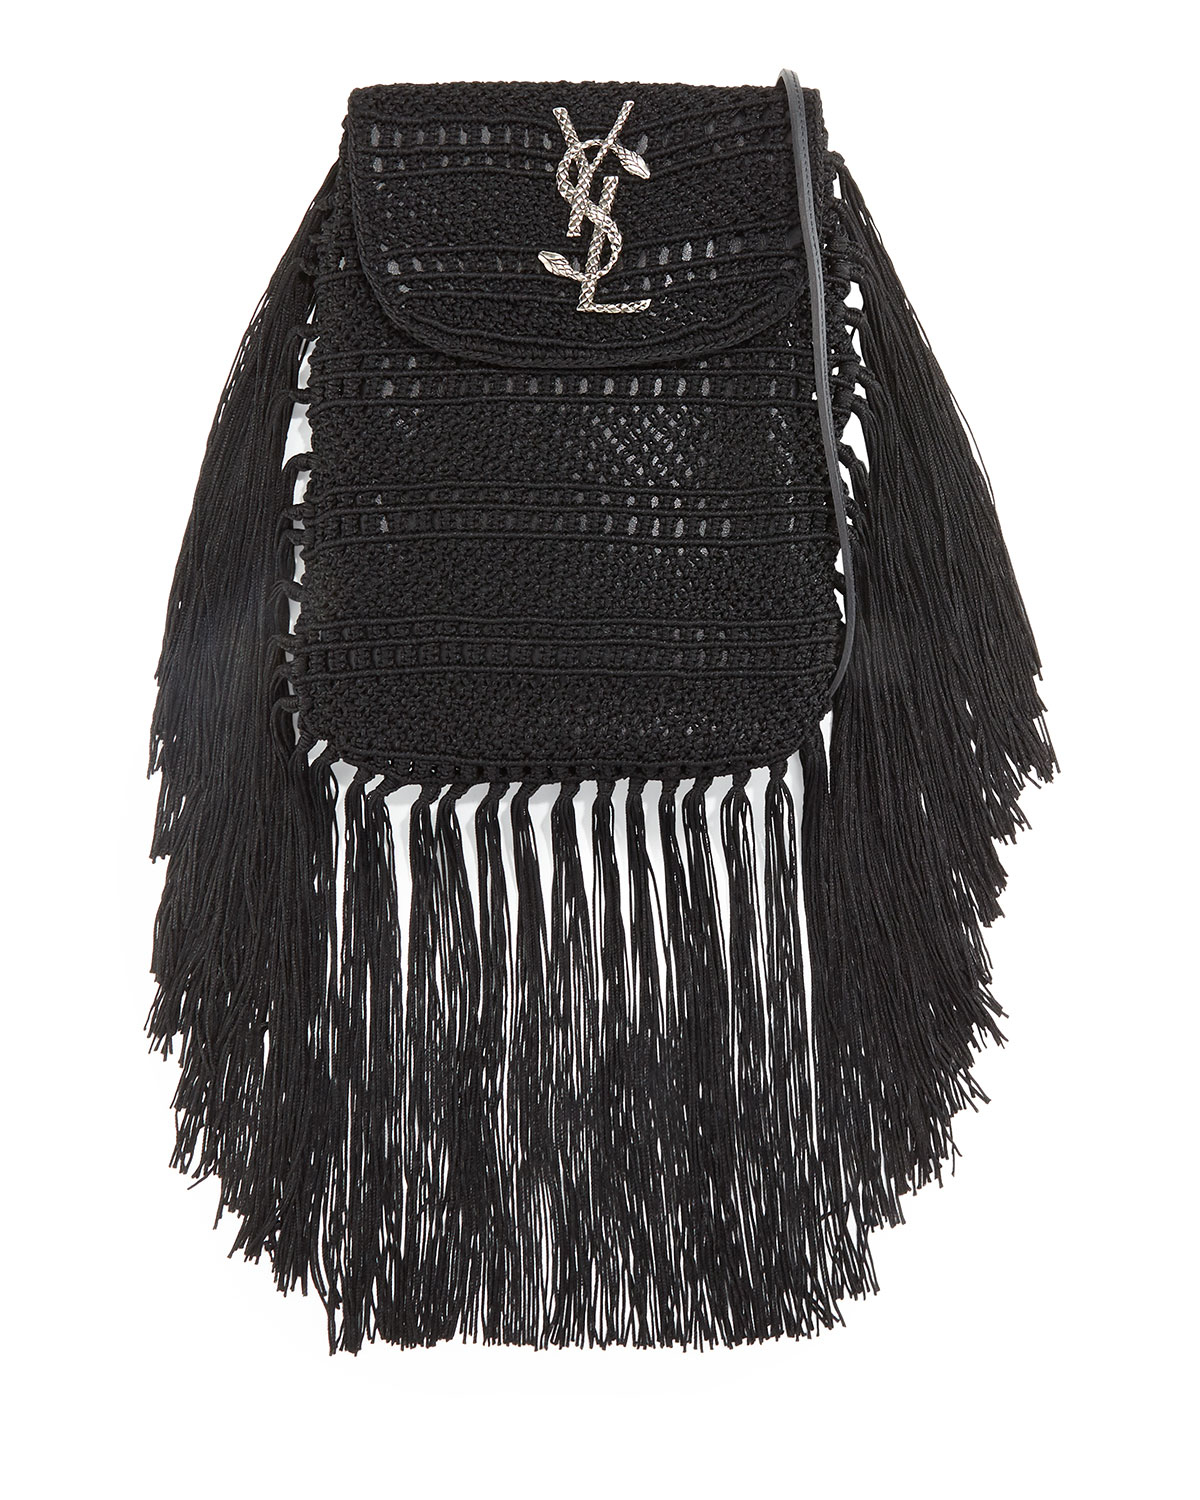 d0219c67f8 Lyst - Saint Laurent Anita Fringed Leather Small Cross-Body Bag in Black